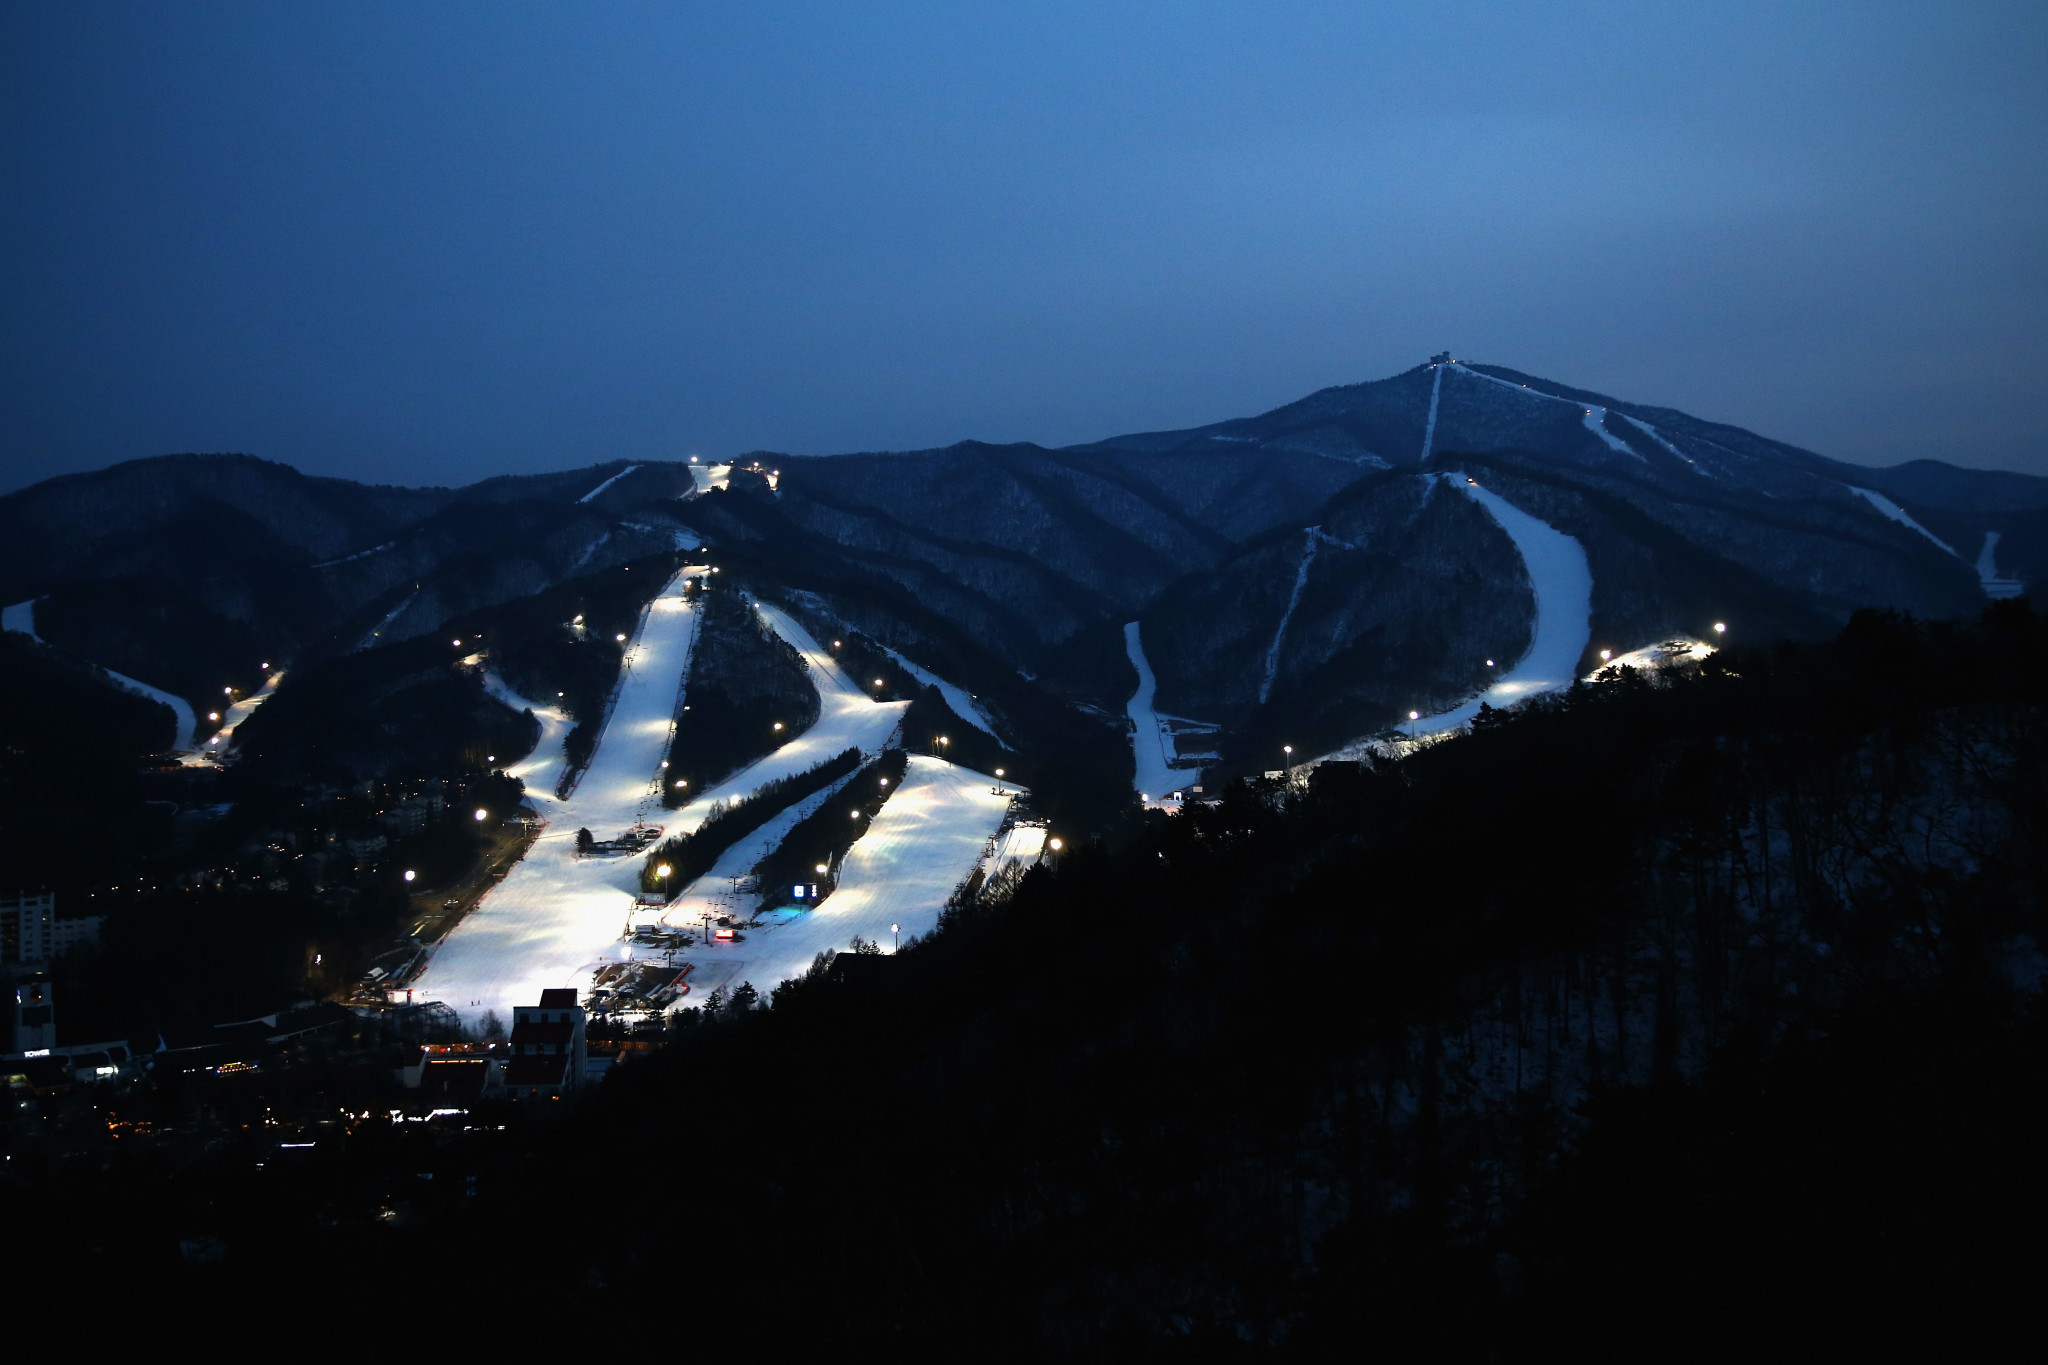 Pyeongchang 2018 ski slope to be dismantled to restore forest before Gangwon 2024